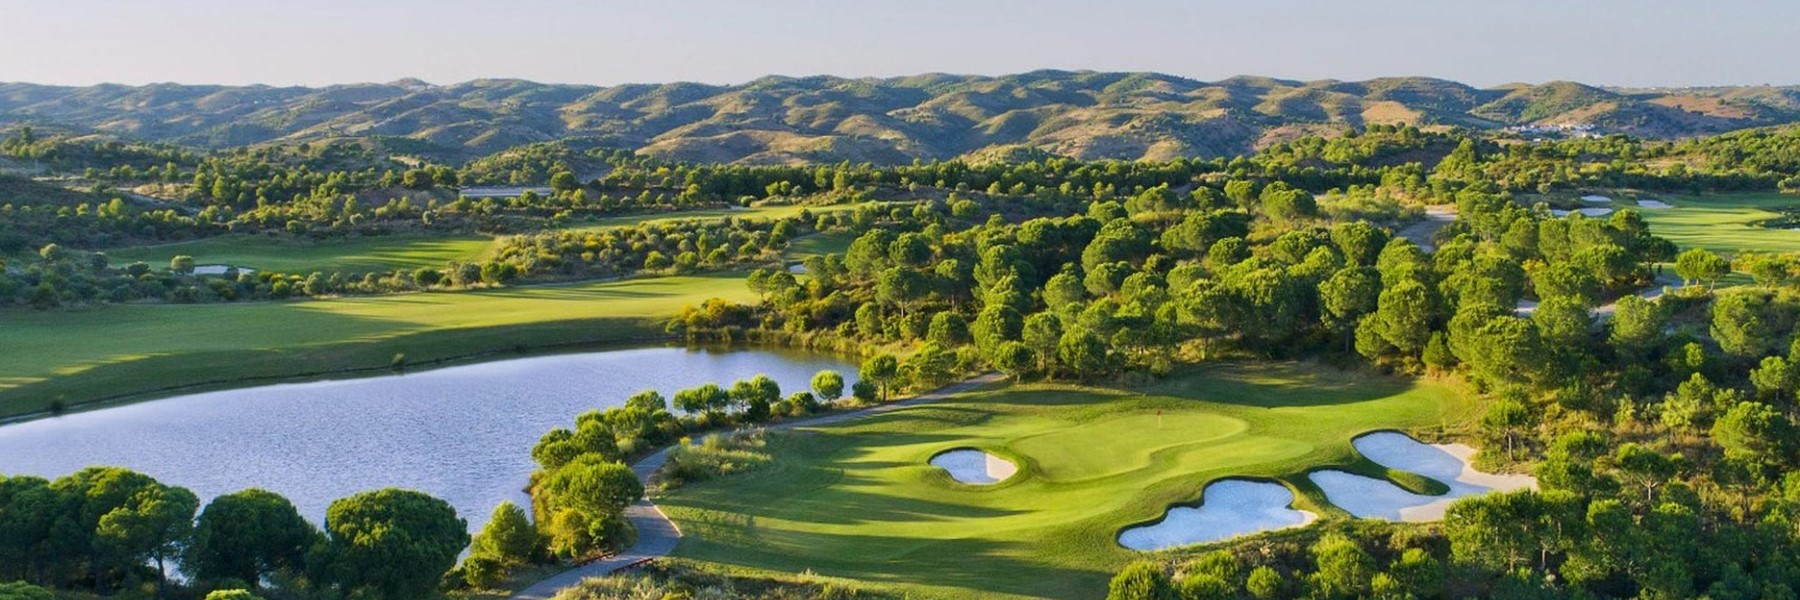 Algarve Golf Tee Times